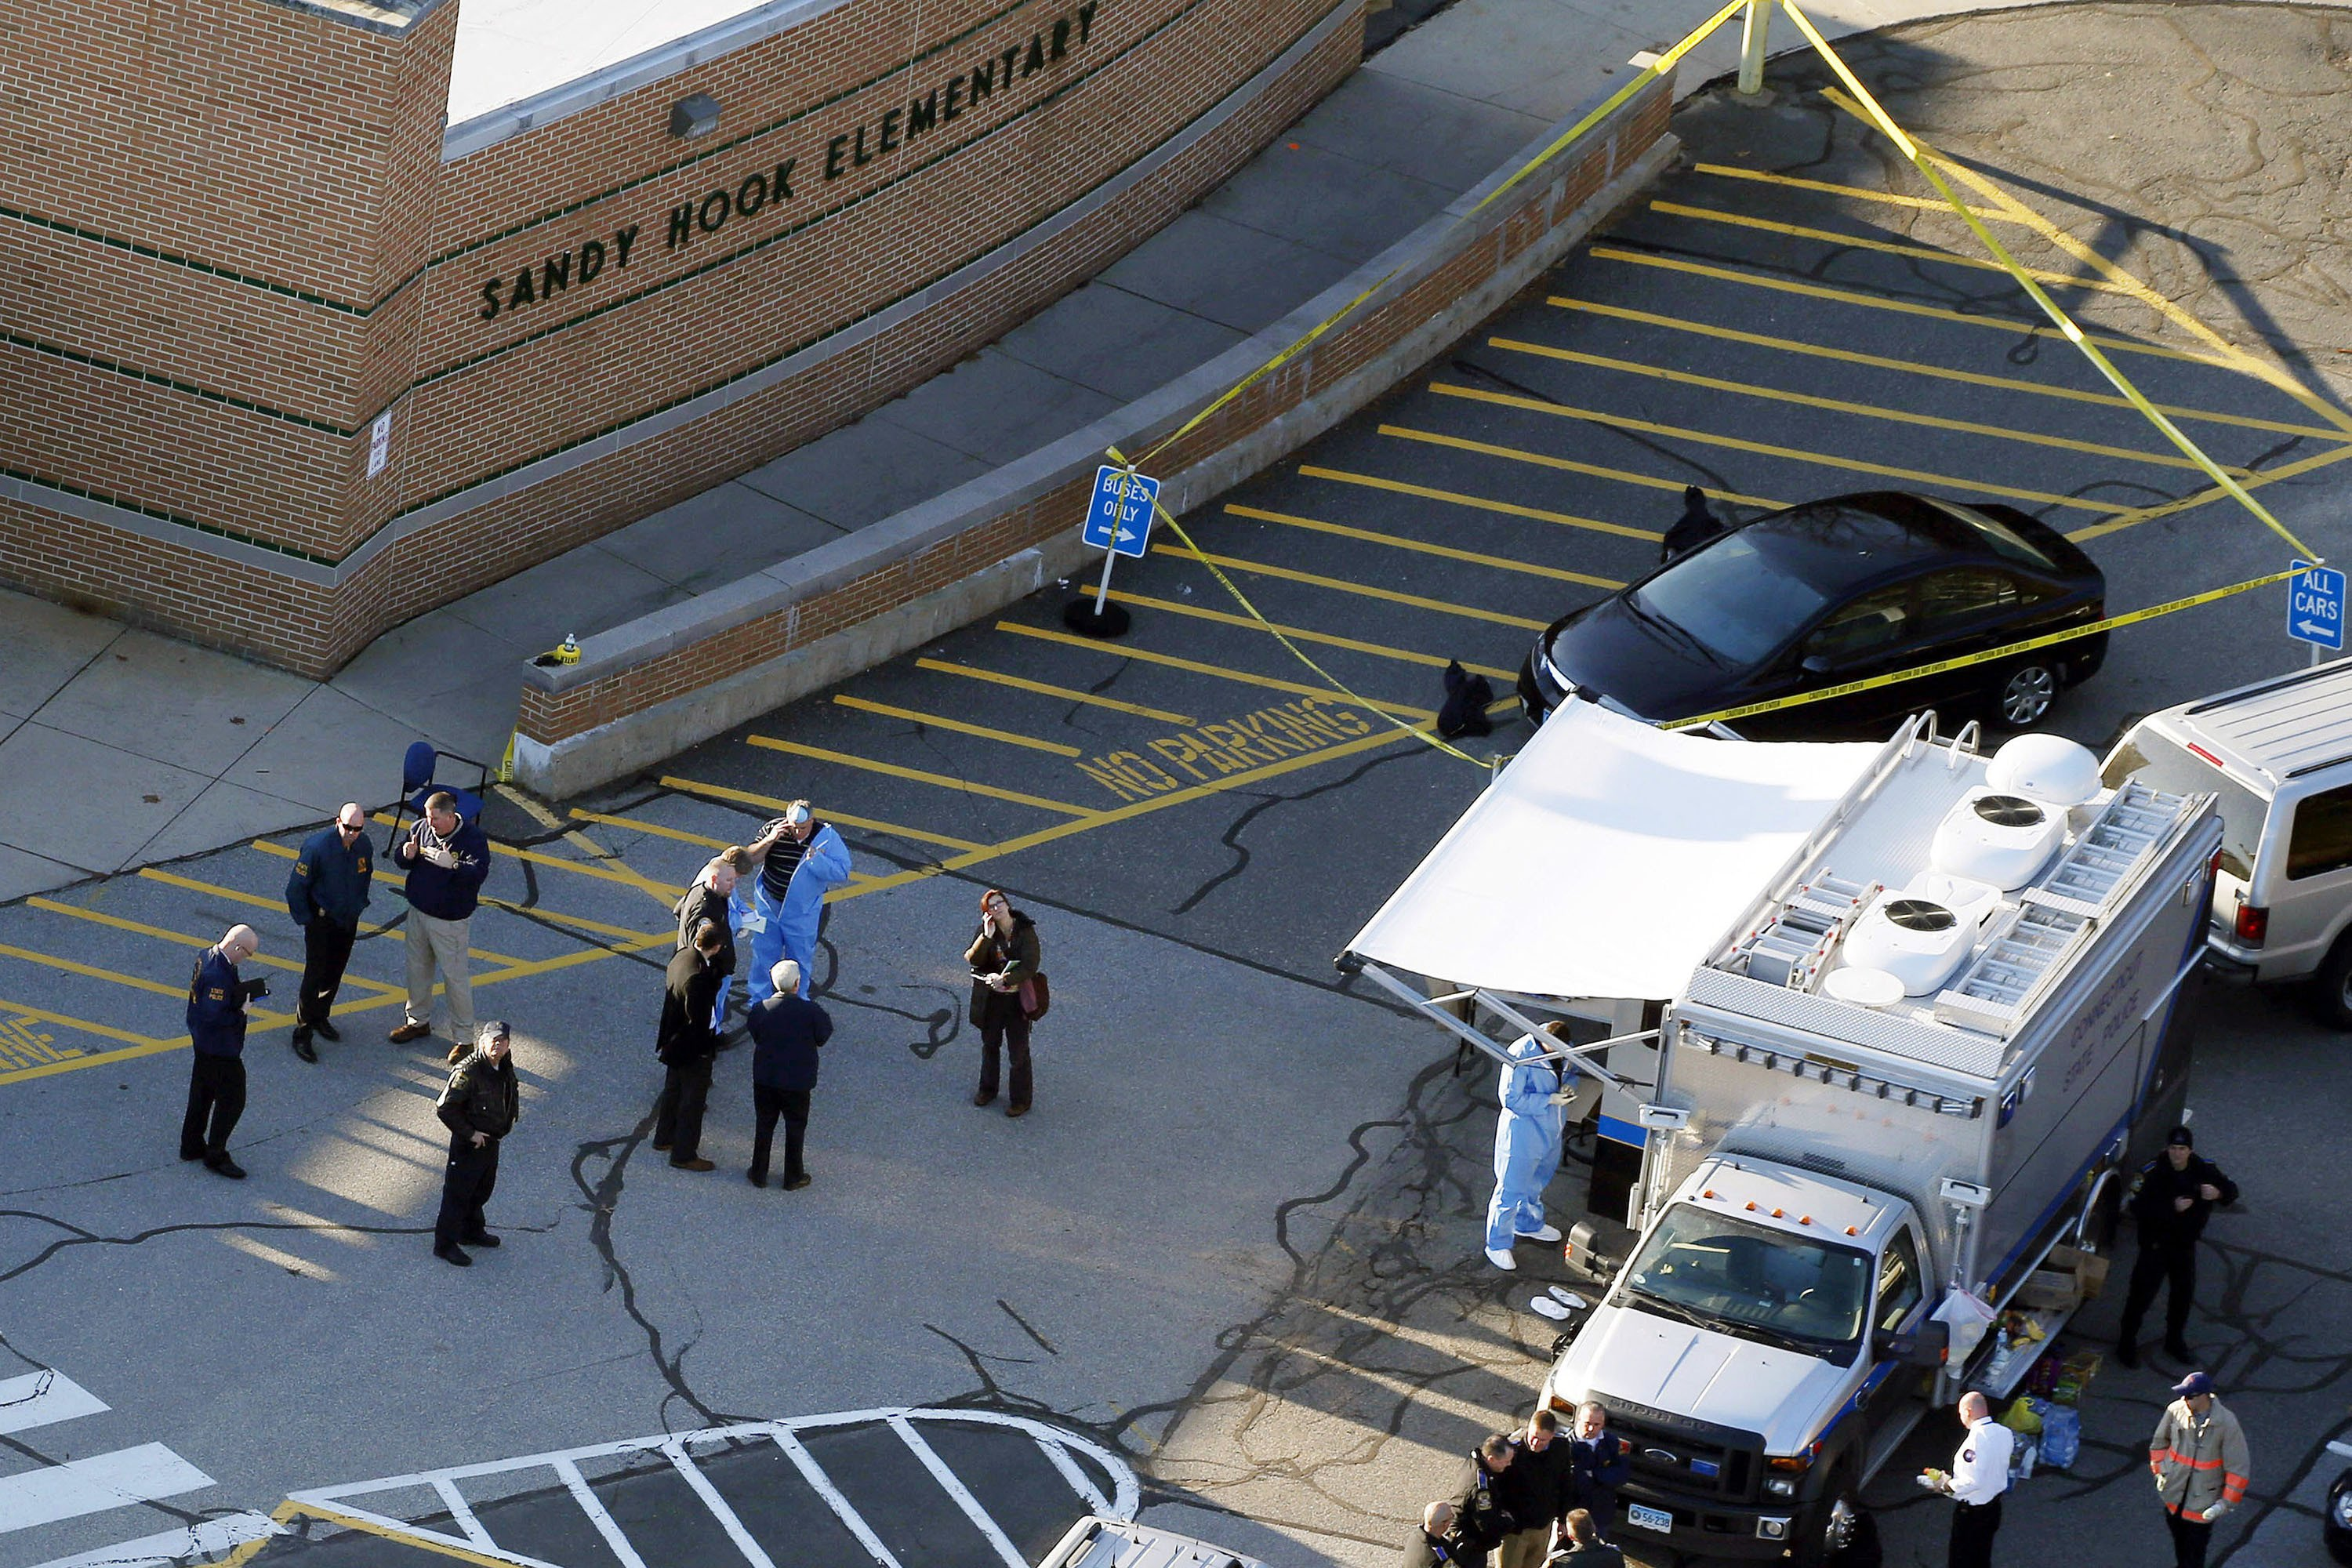 'Dignitaries' may have contaminated Sandy Hook massacre evidence: report